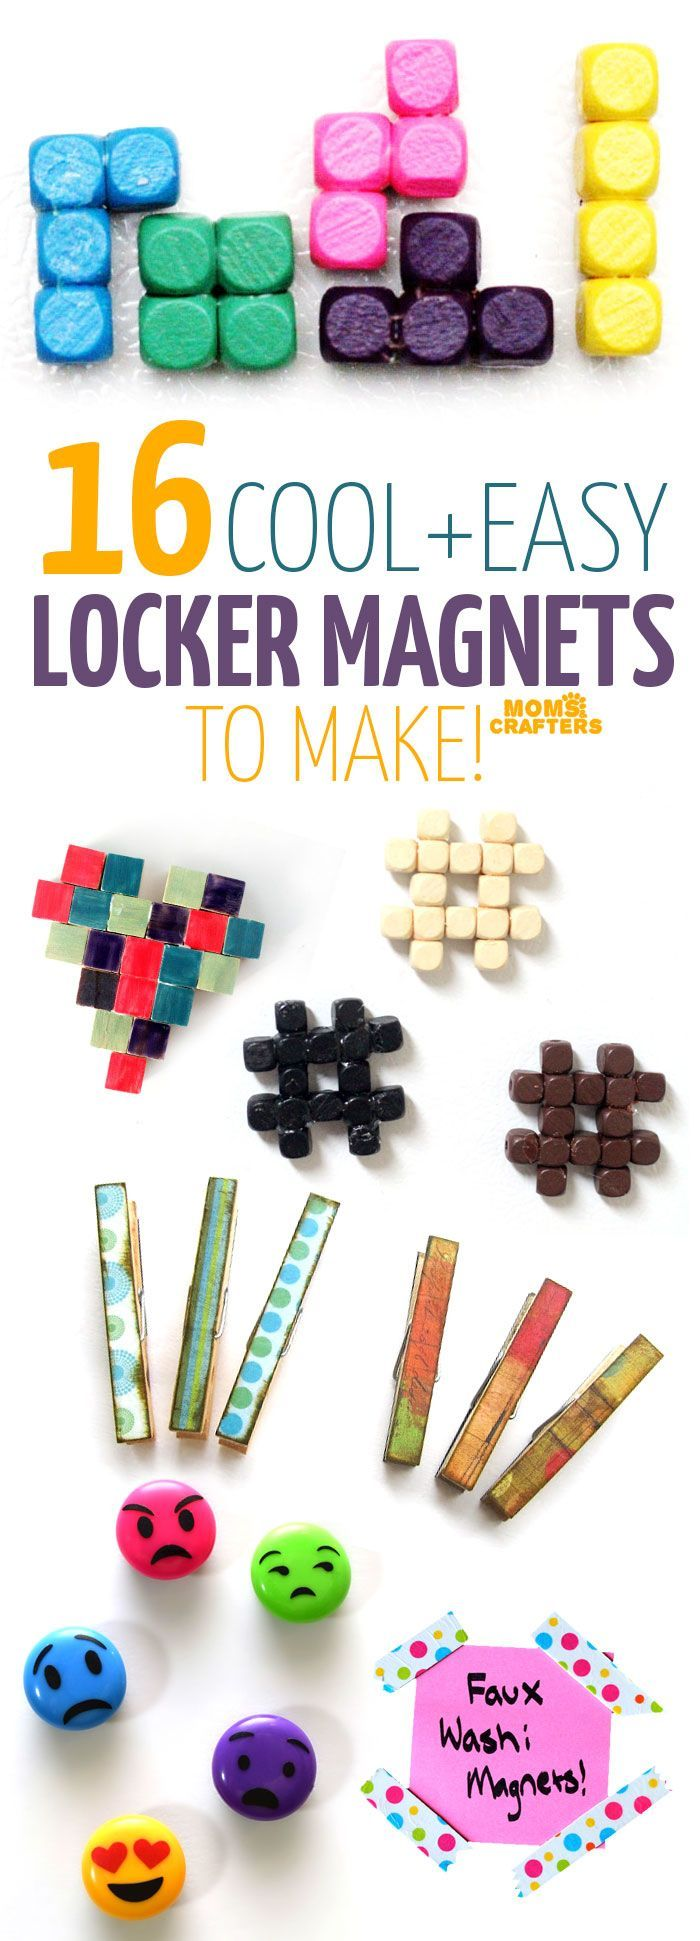 Check out these 16 COOL MAGNET CRAFTS - diy magnets that are perfect for your locker or fridge! These locker magnets include emojis, hashtags, washi tape, and plenty more cool stuff. Perfect back to school crafts for tweens and teens...